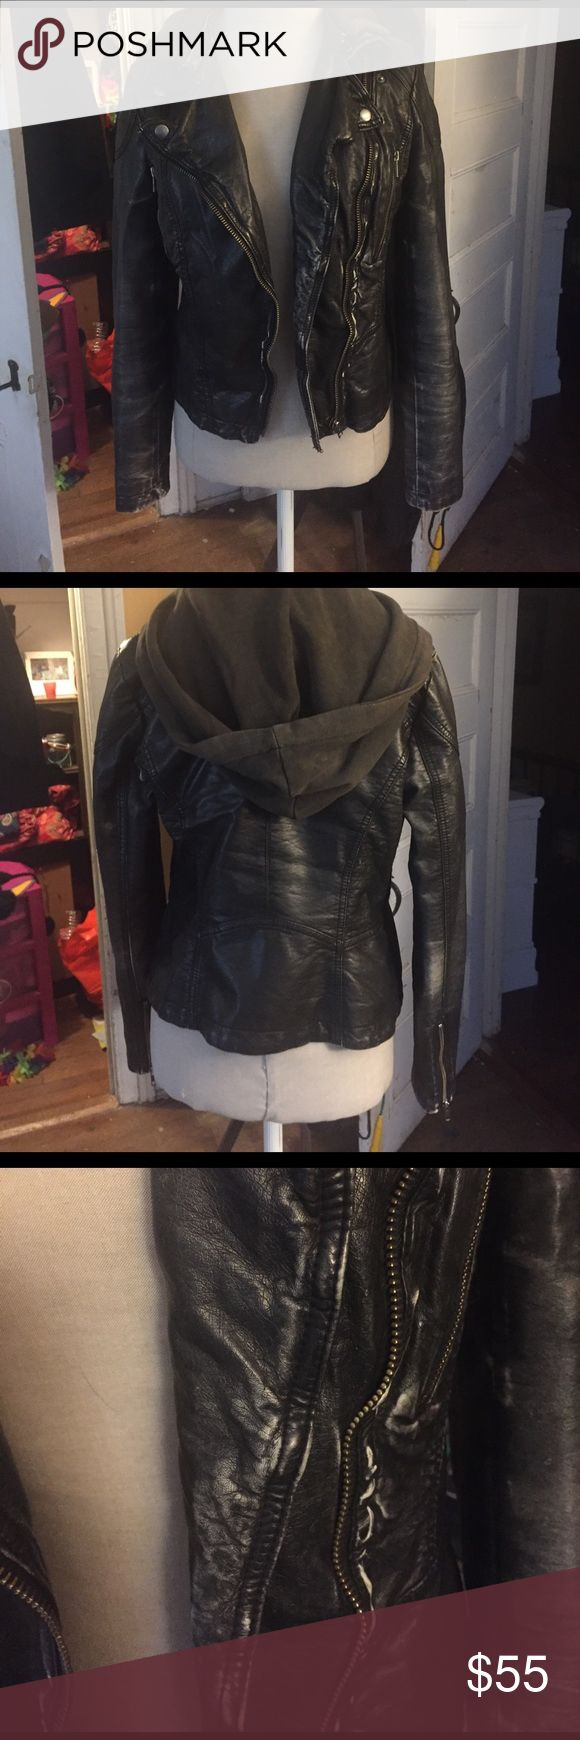 Free People Hooded Leather Jacket I bought this from another posher. The fit is great and it's super flattering! It's just a little too worn for my liking. I'm usually a medium and this fit me perfectly. Hood is removable. Feel free to make an offer! Free People Jackets & Coats